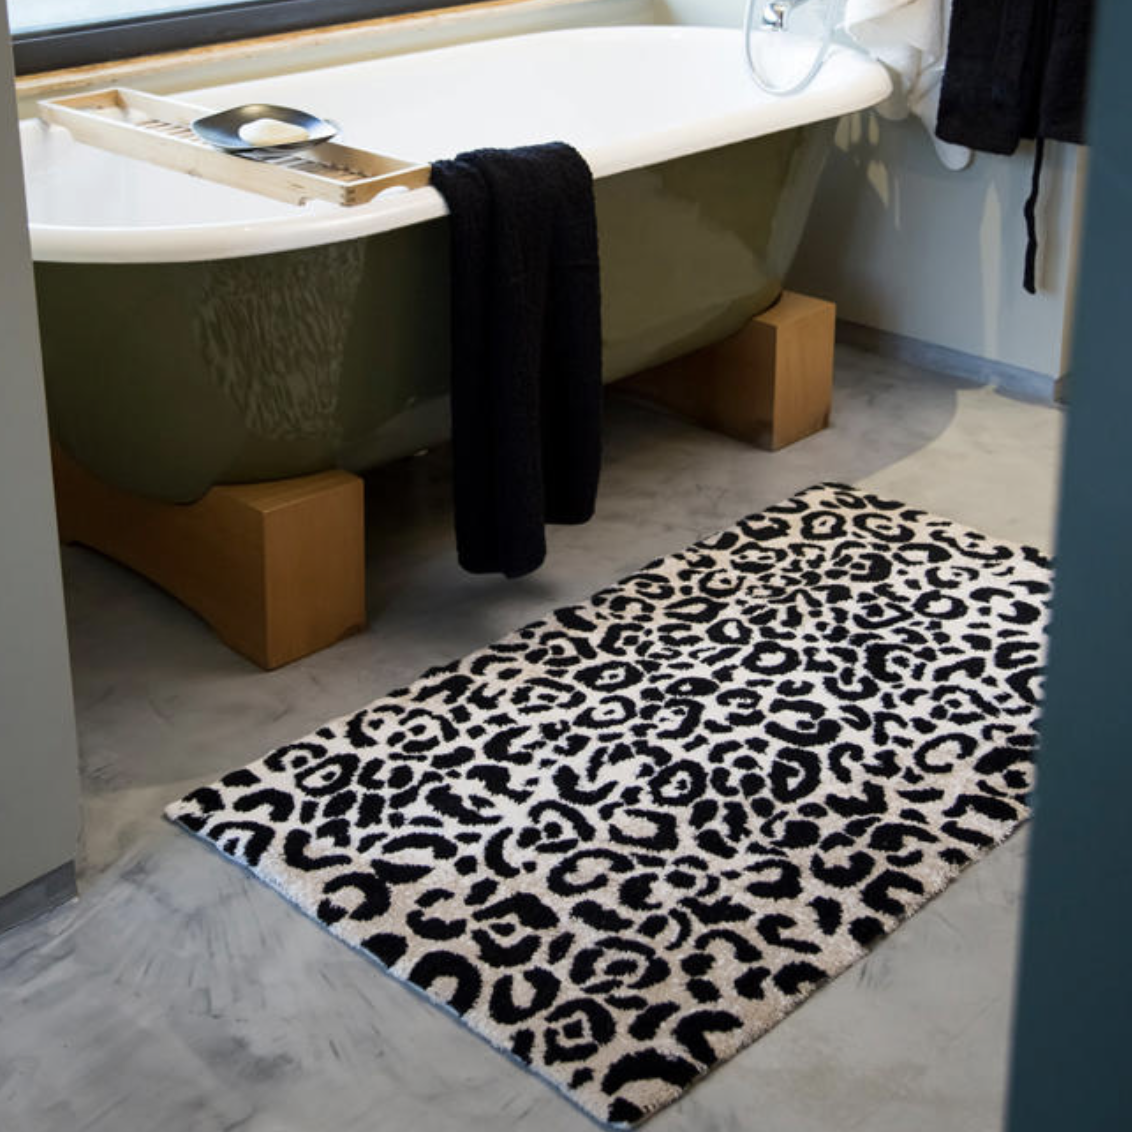 abyss_habidecor LEOPARD.png